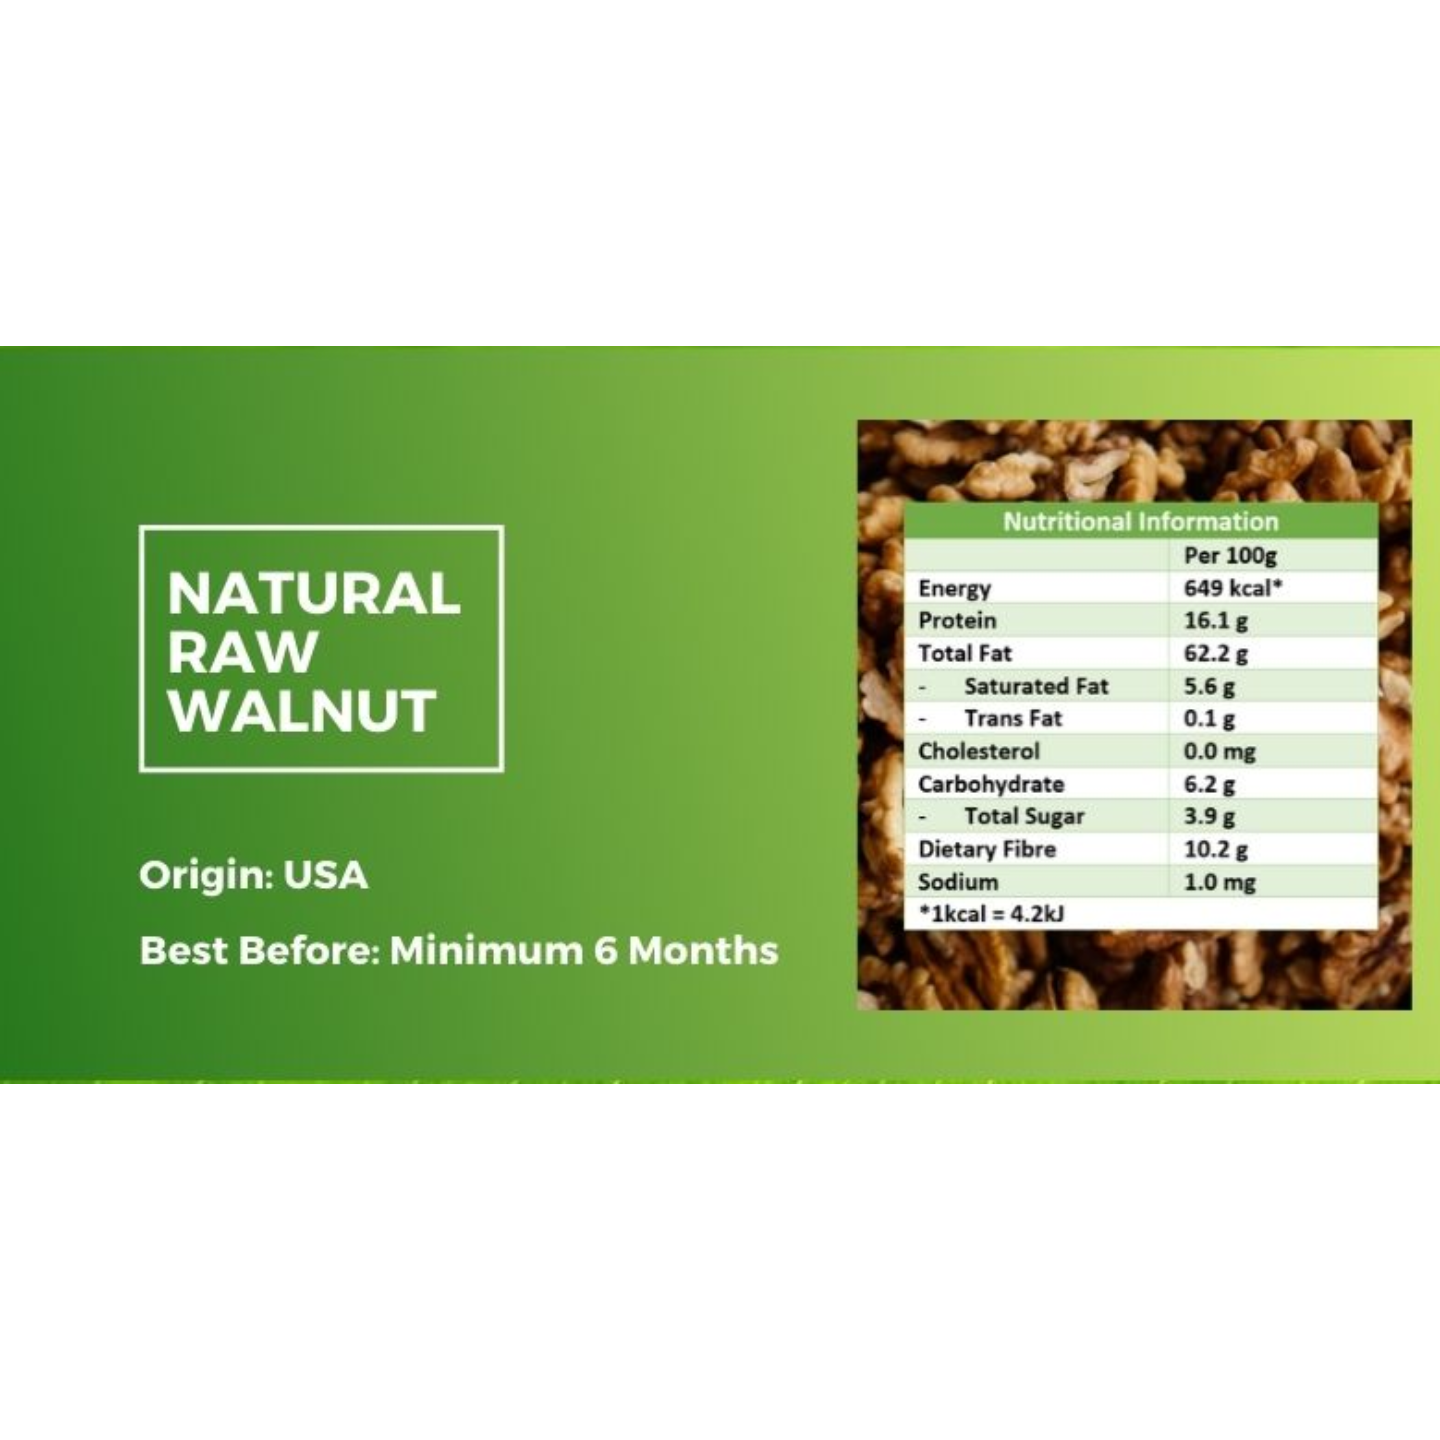 Natural Raw Walnut [500g] x2 - Value Bundle 1+1